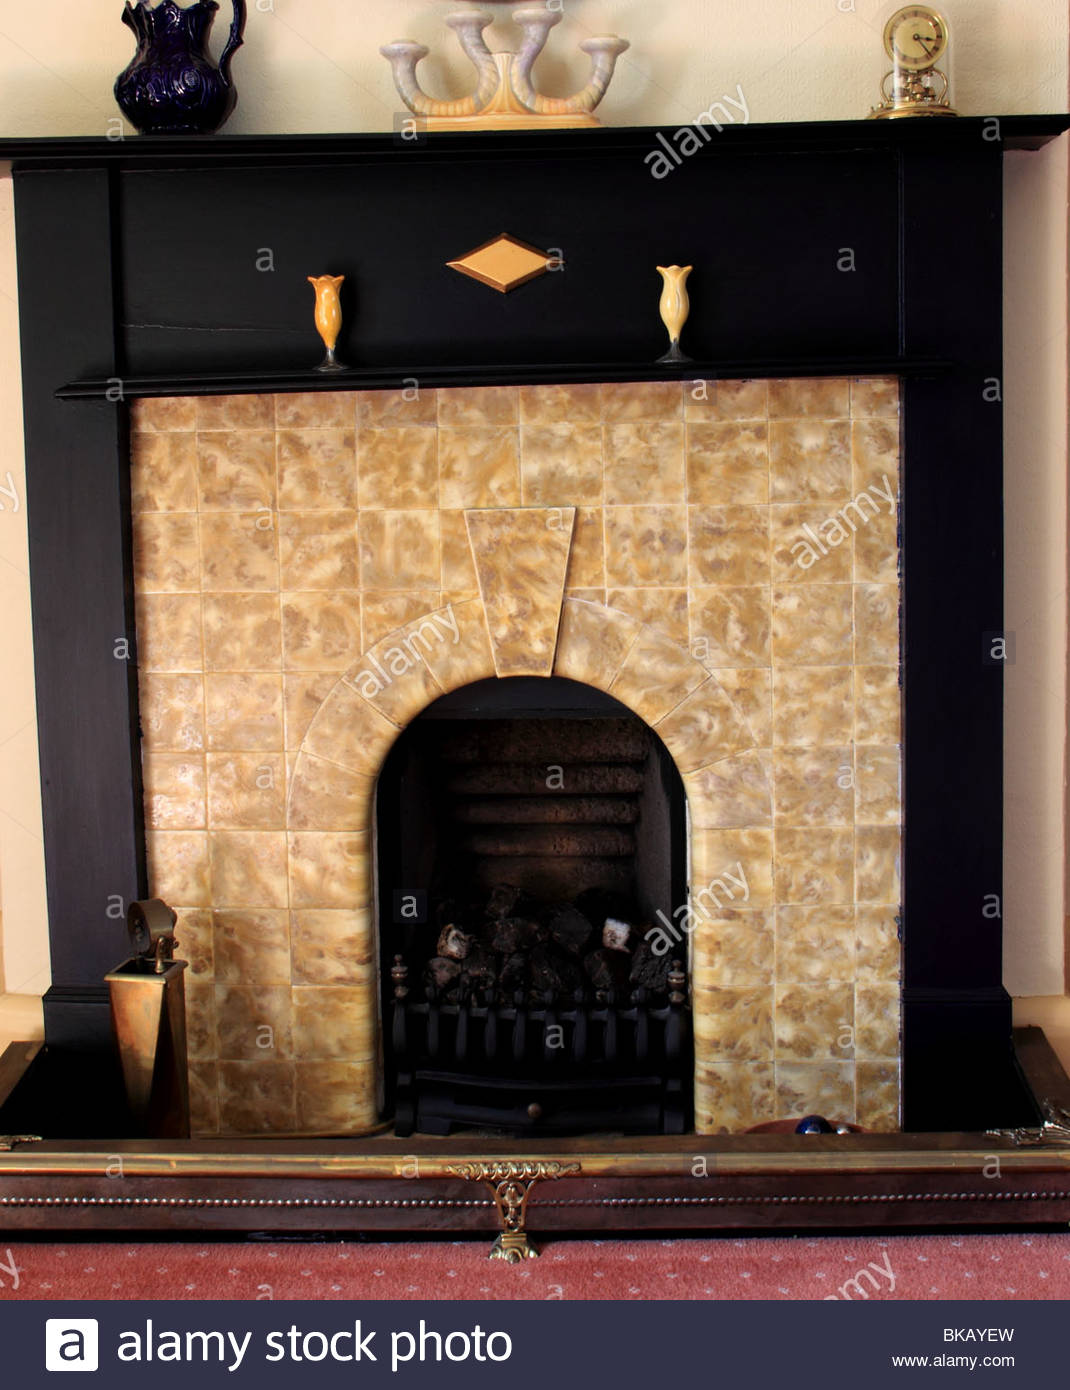 art deco fireplace with wooden surround and period ceramics BKAYEW